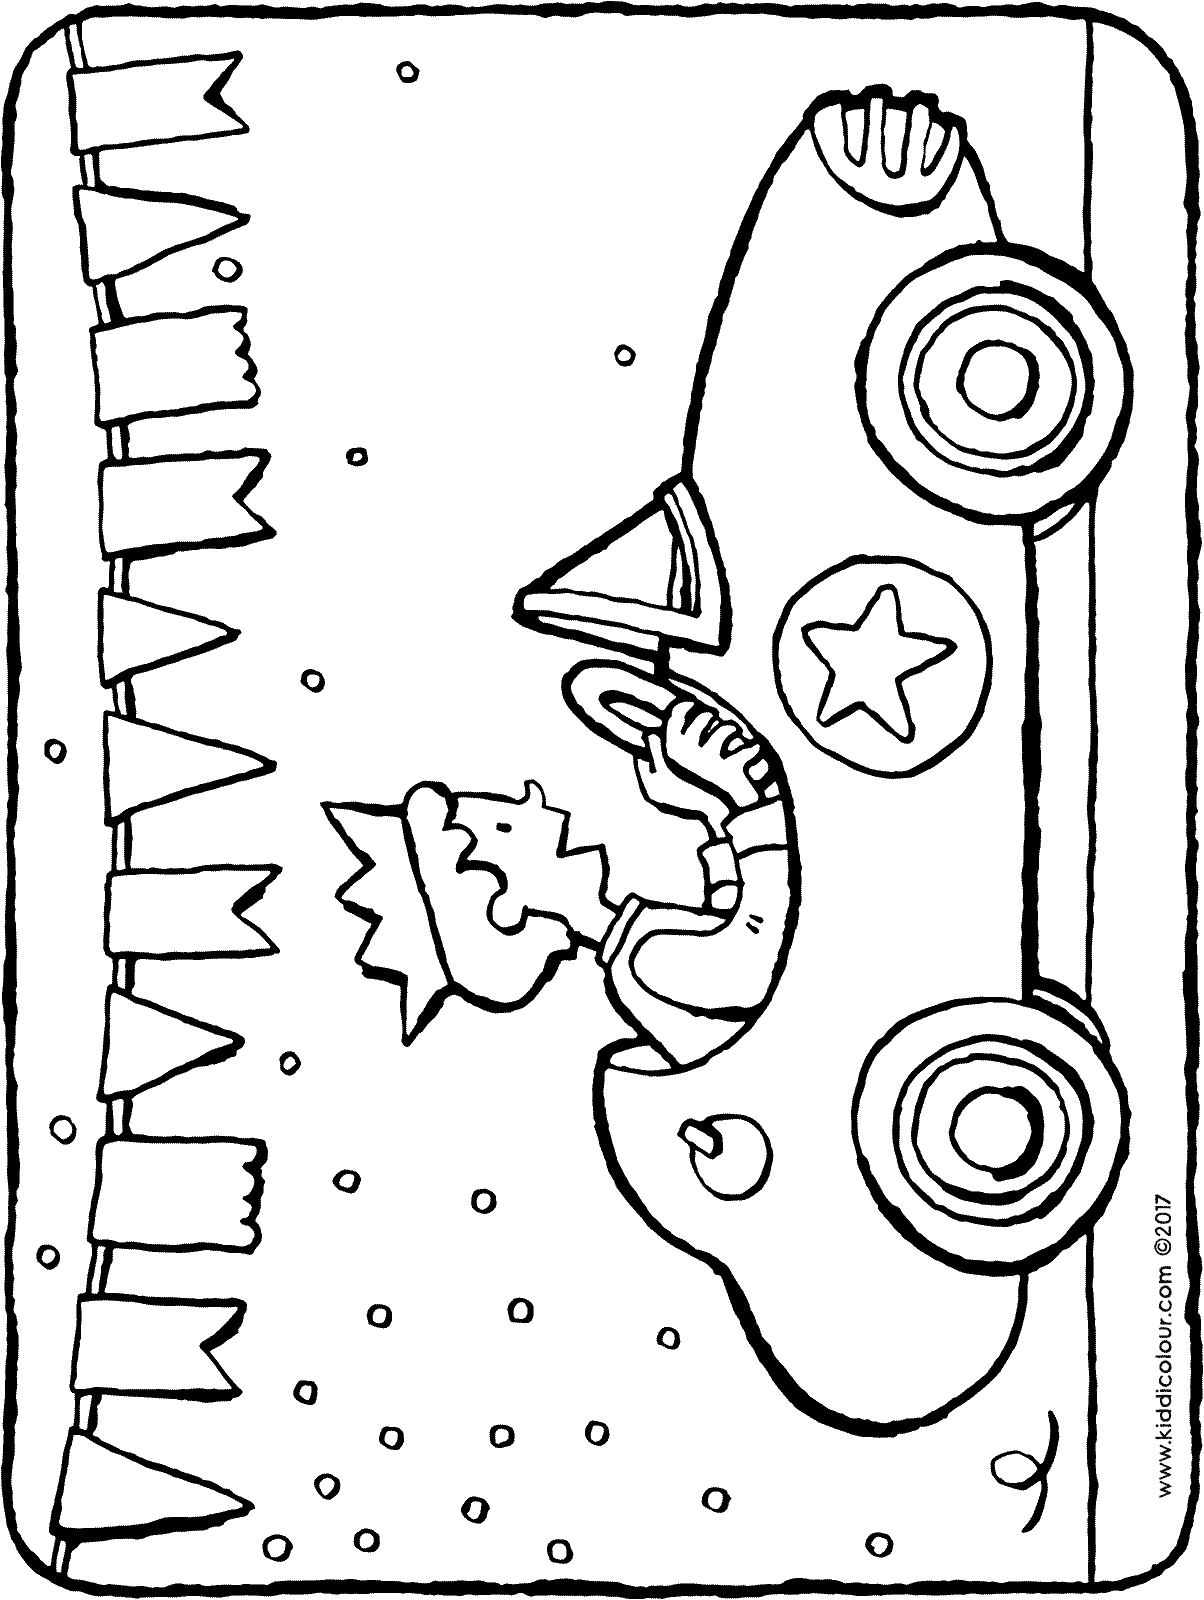 racing car birthday celebration colouring page drawing picture 01H